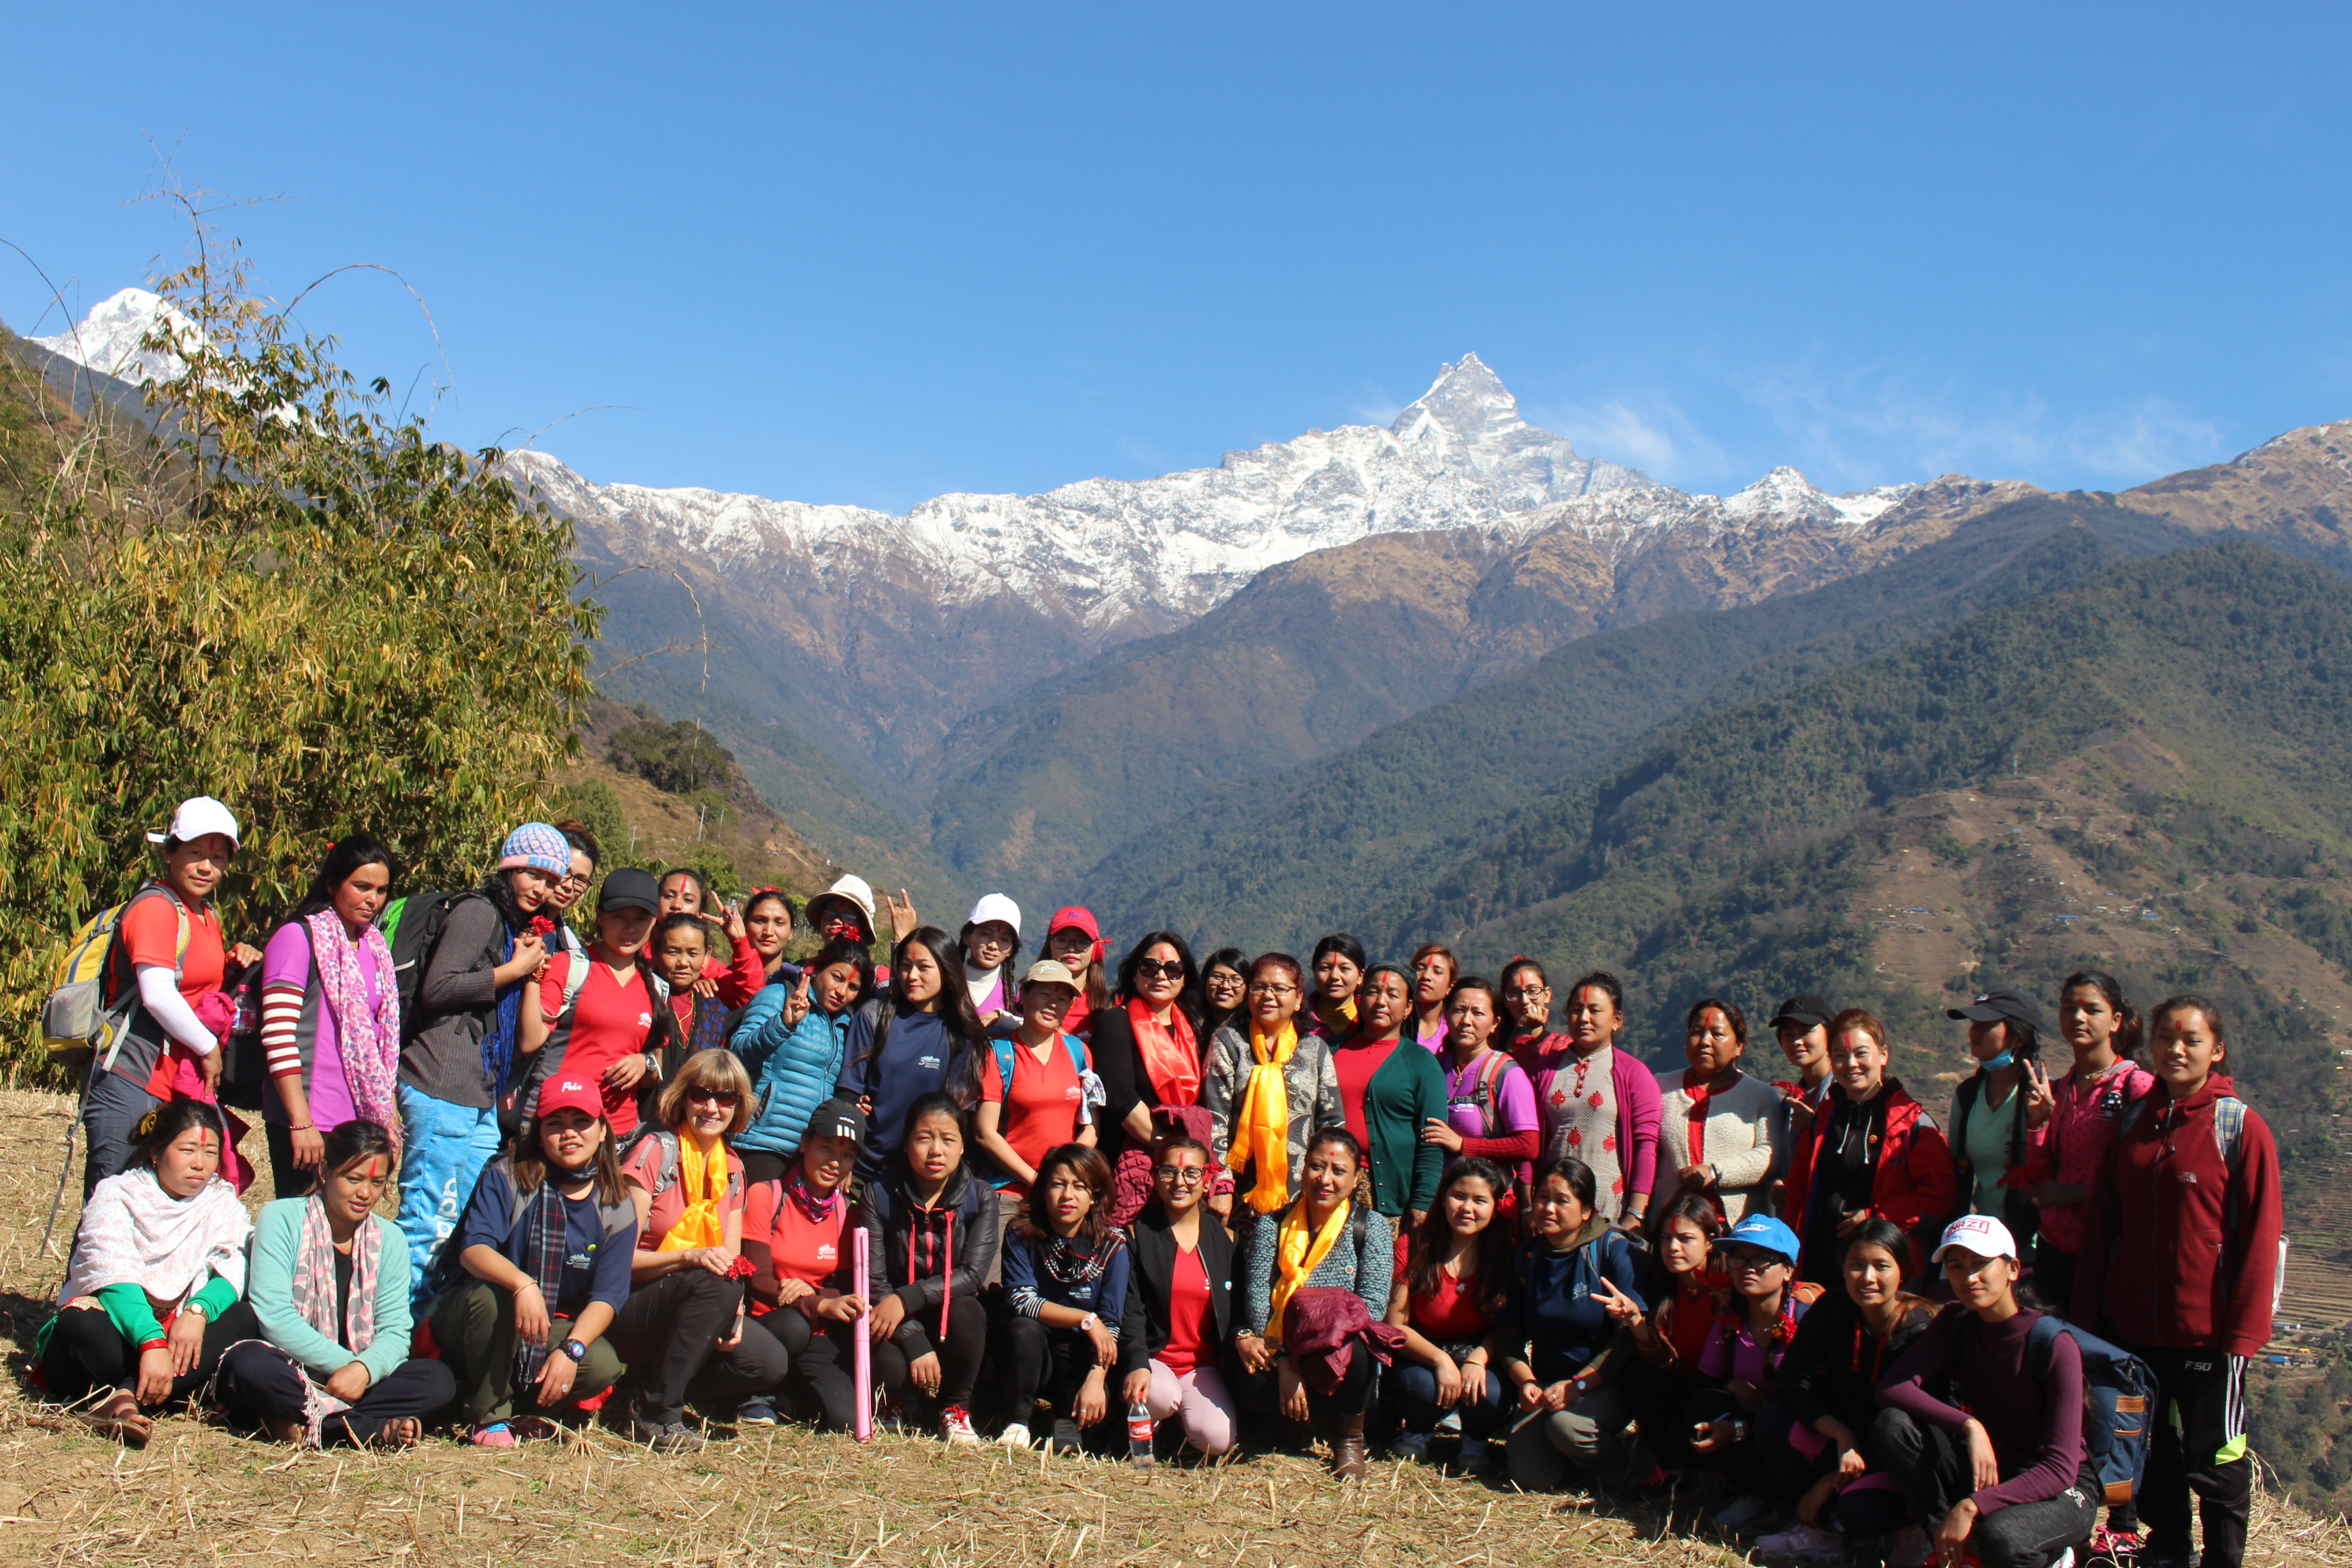 3sisters-tourism-training-institute-improve-employment-opportunities-develop-skills-motivate-youth-tourism-sector-trekking-license-guide-training-course-nepal